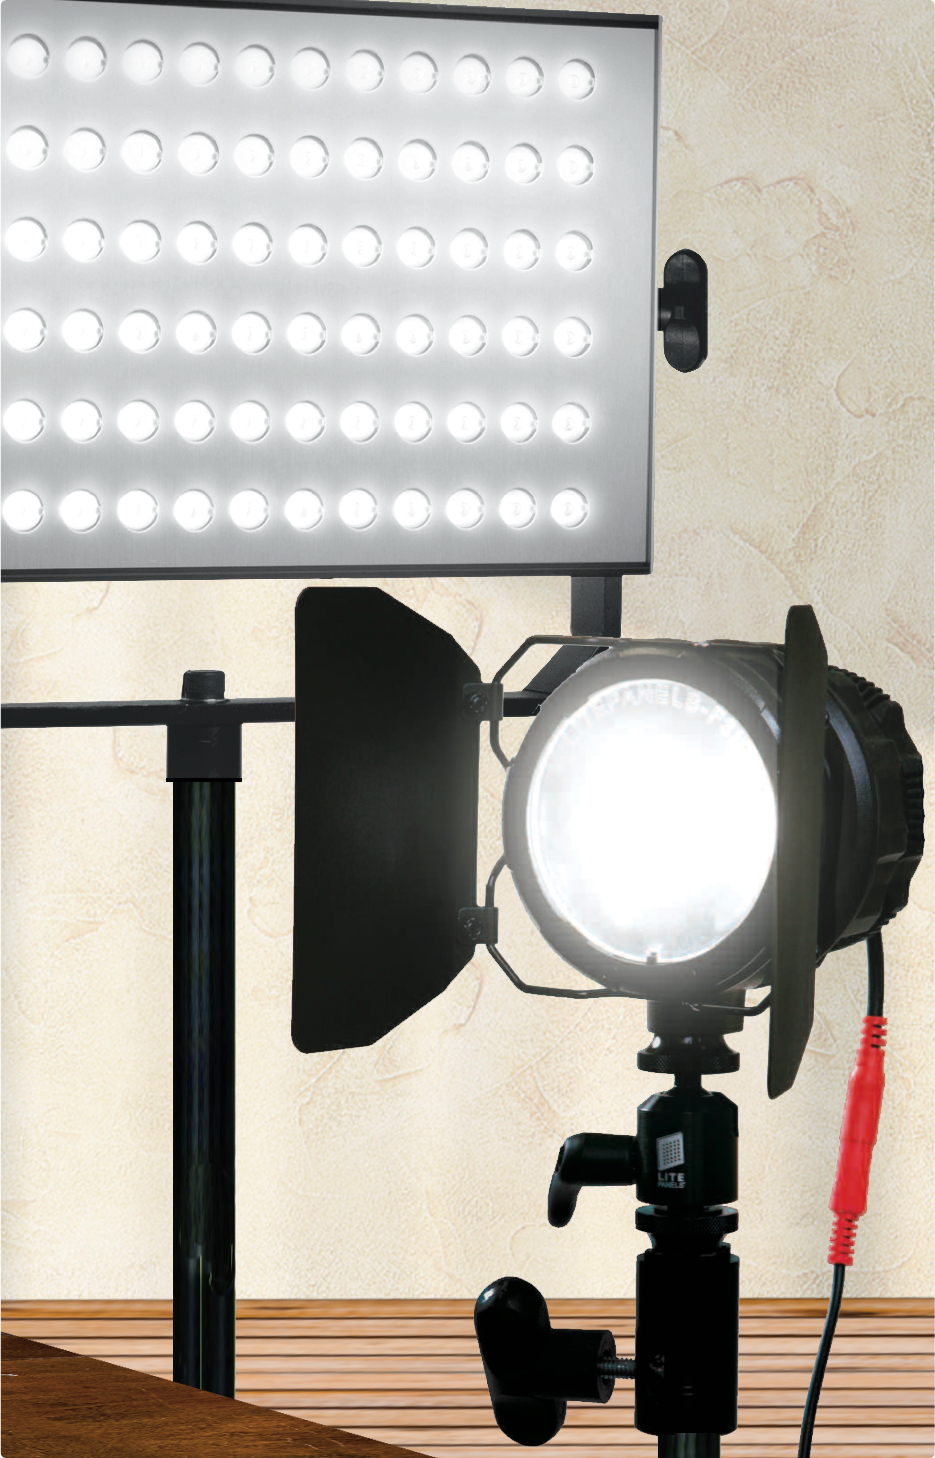 Innovative Led Lighting For Stills And Video Bh Explora Highpower White Driver Runs Batteryoperated Portable Available With A 50 Degree Flood Beam Angle The Bi Focus Is Yet Further Enhancement Of 1 X Two Versions Are In Daylight 5600k